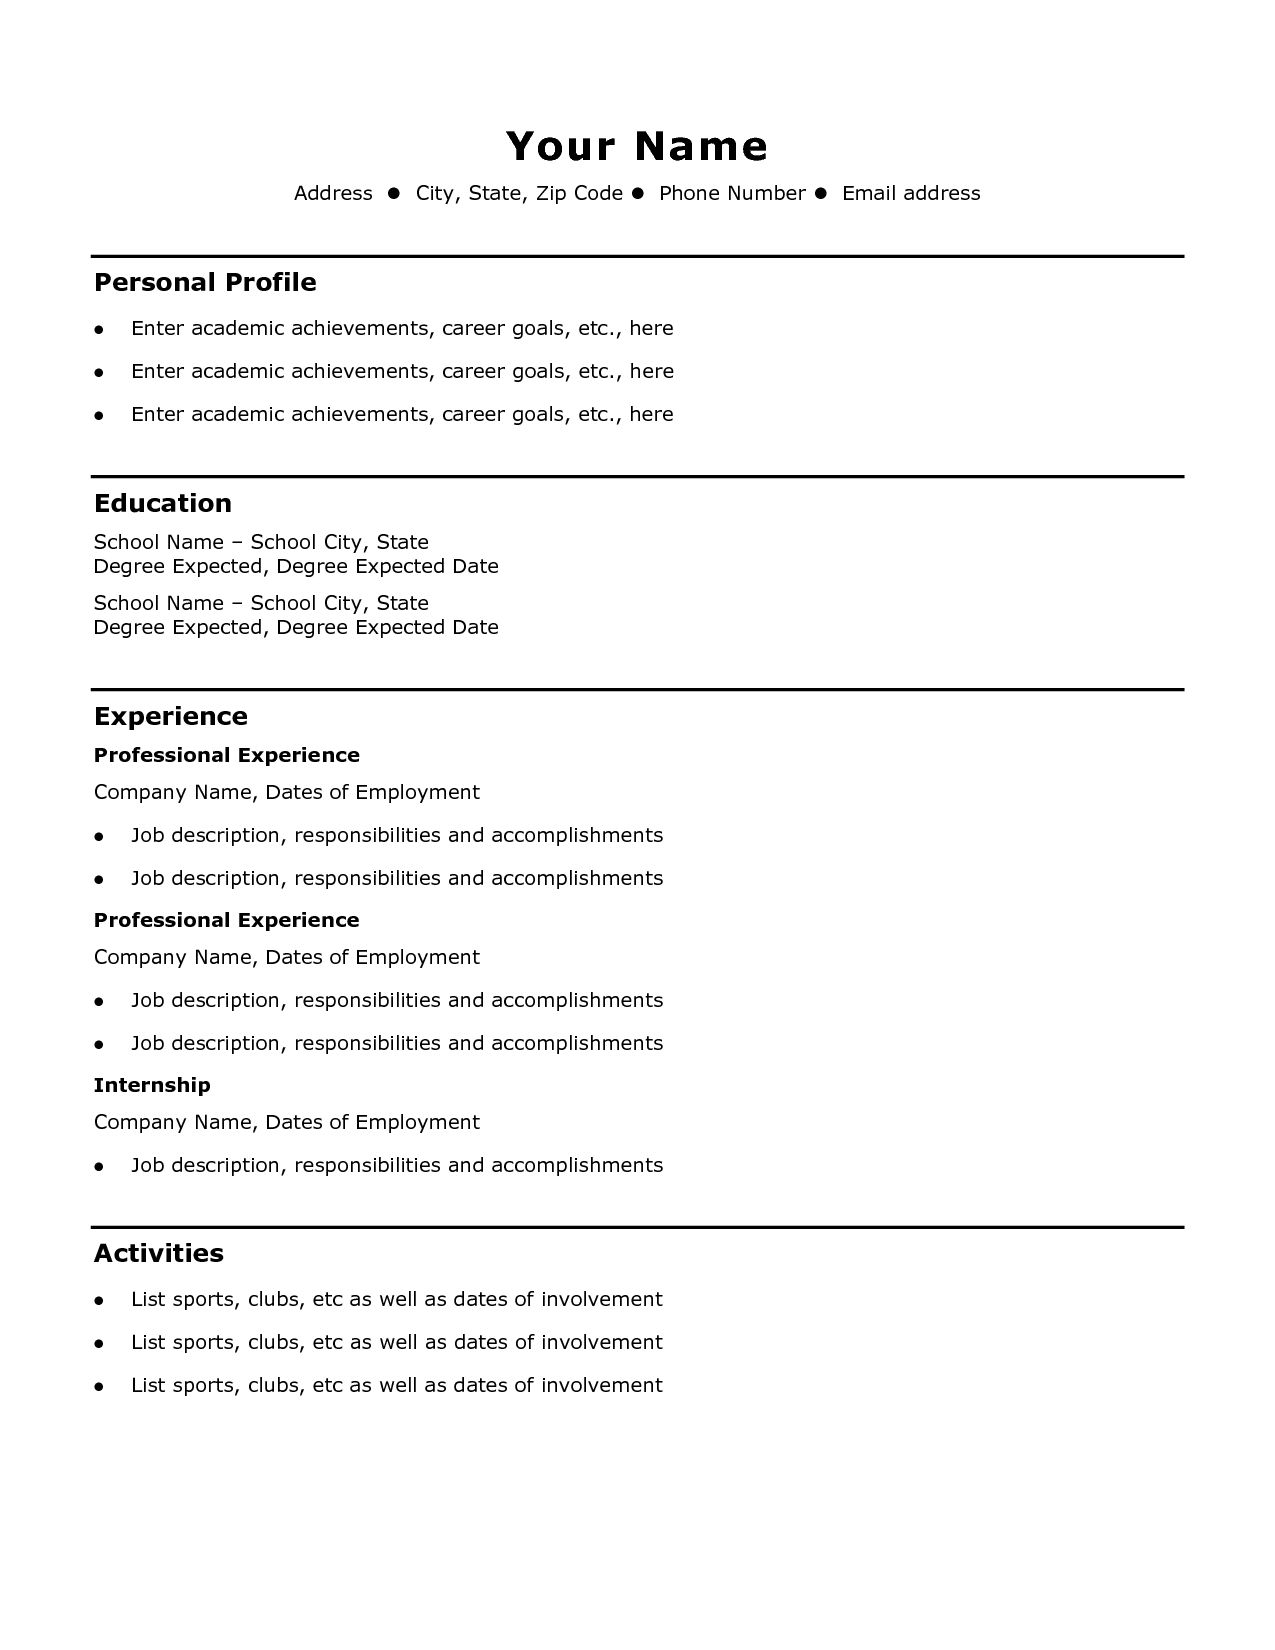 Resume For Job Meaning